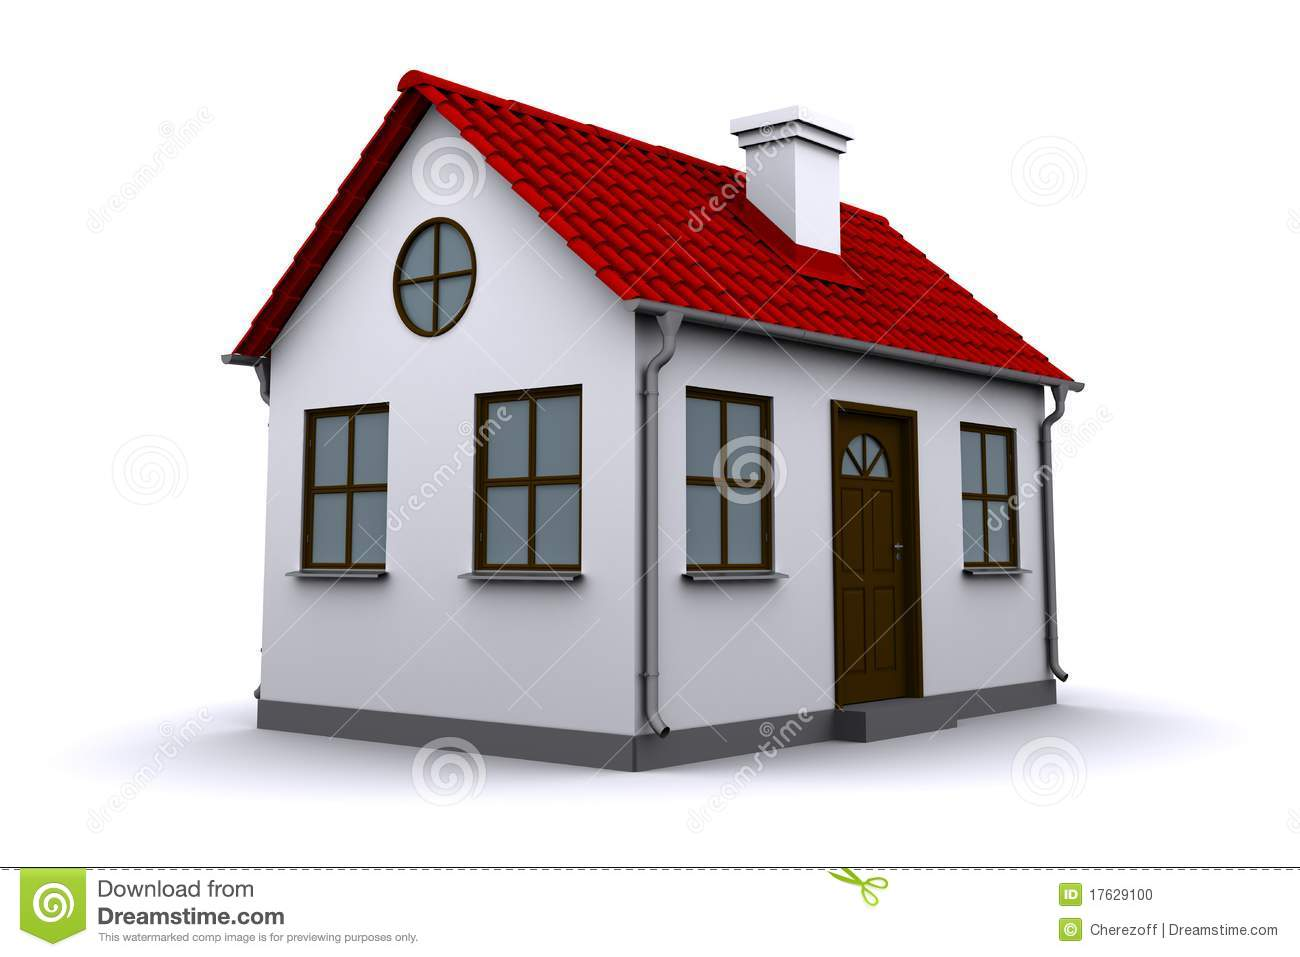 A small house with red roof stock illustration image for Cupola on house